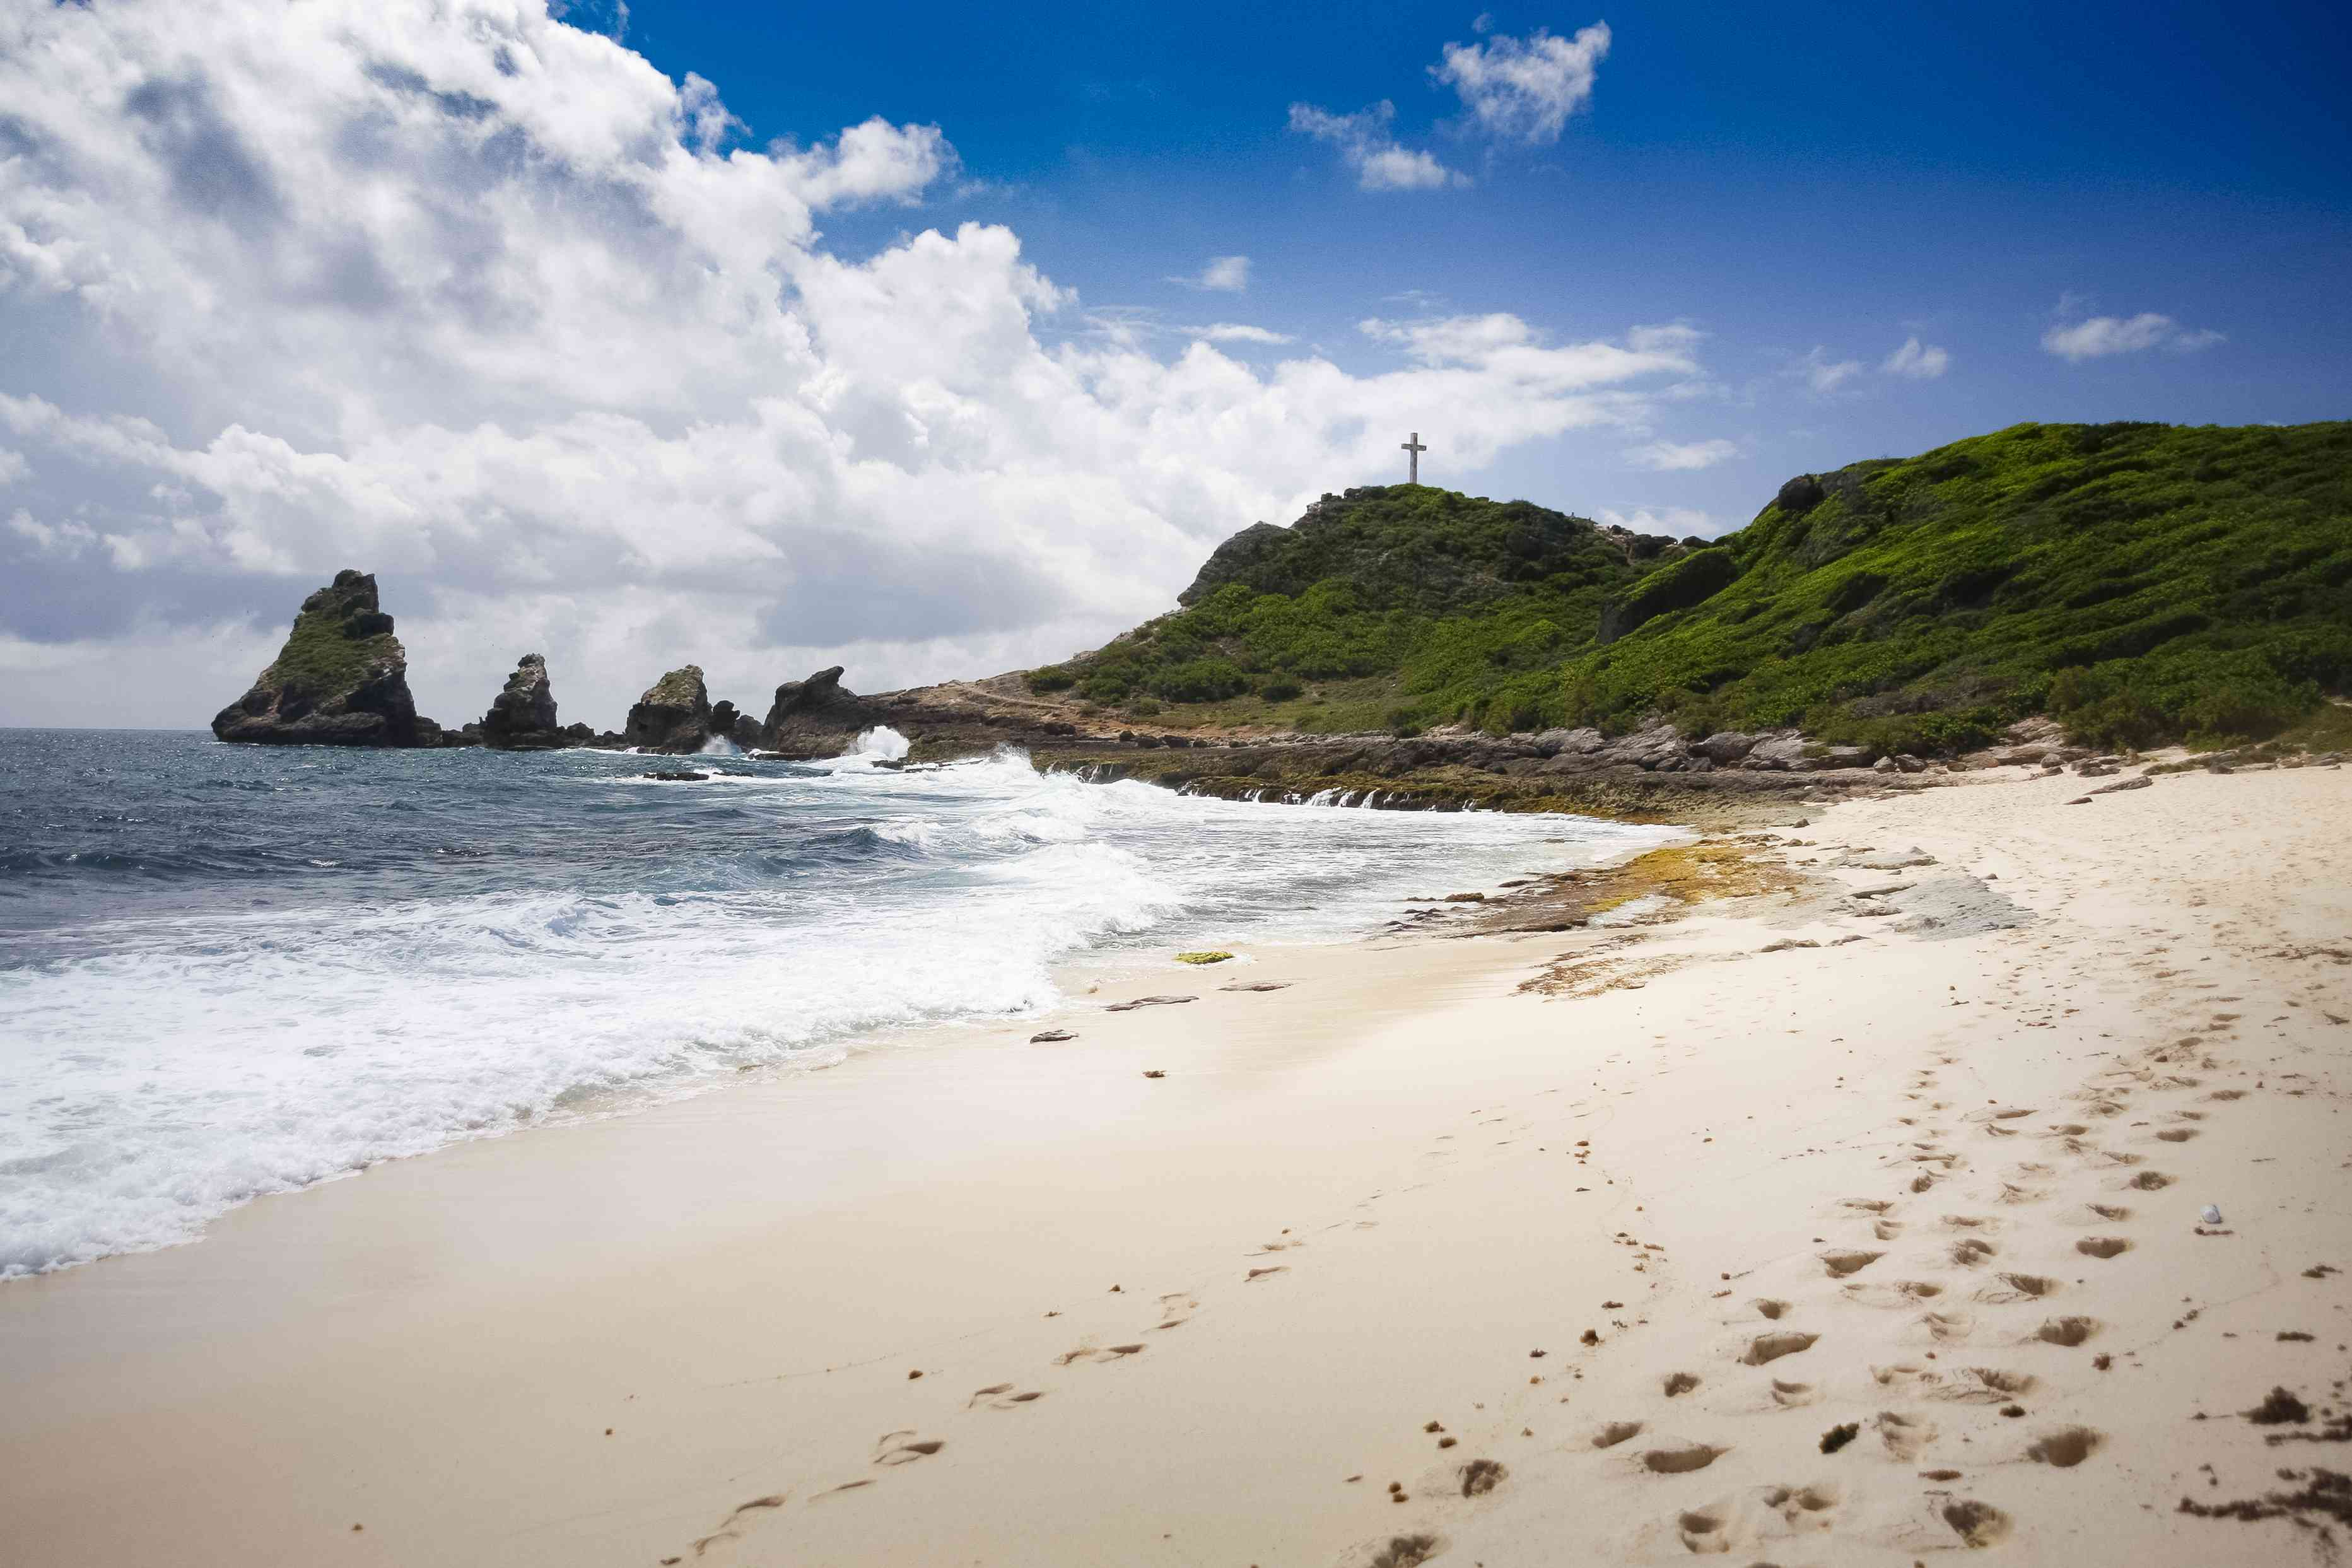 Sandy beach and tall sea rocks at Pointe des Châteaux, Guadeloupe